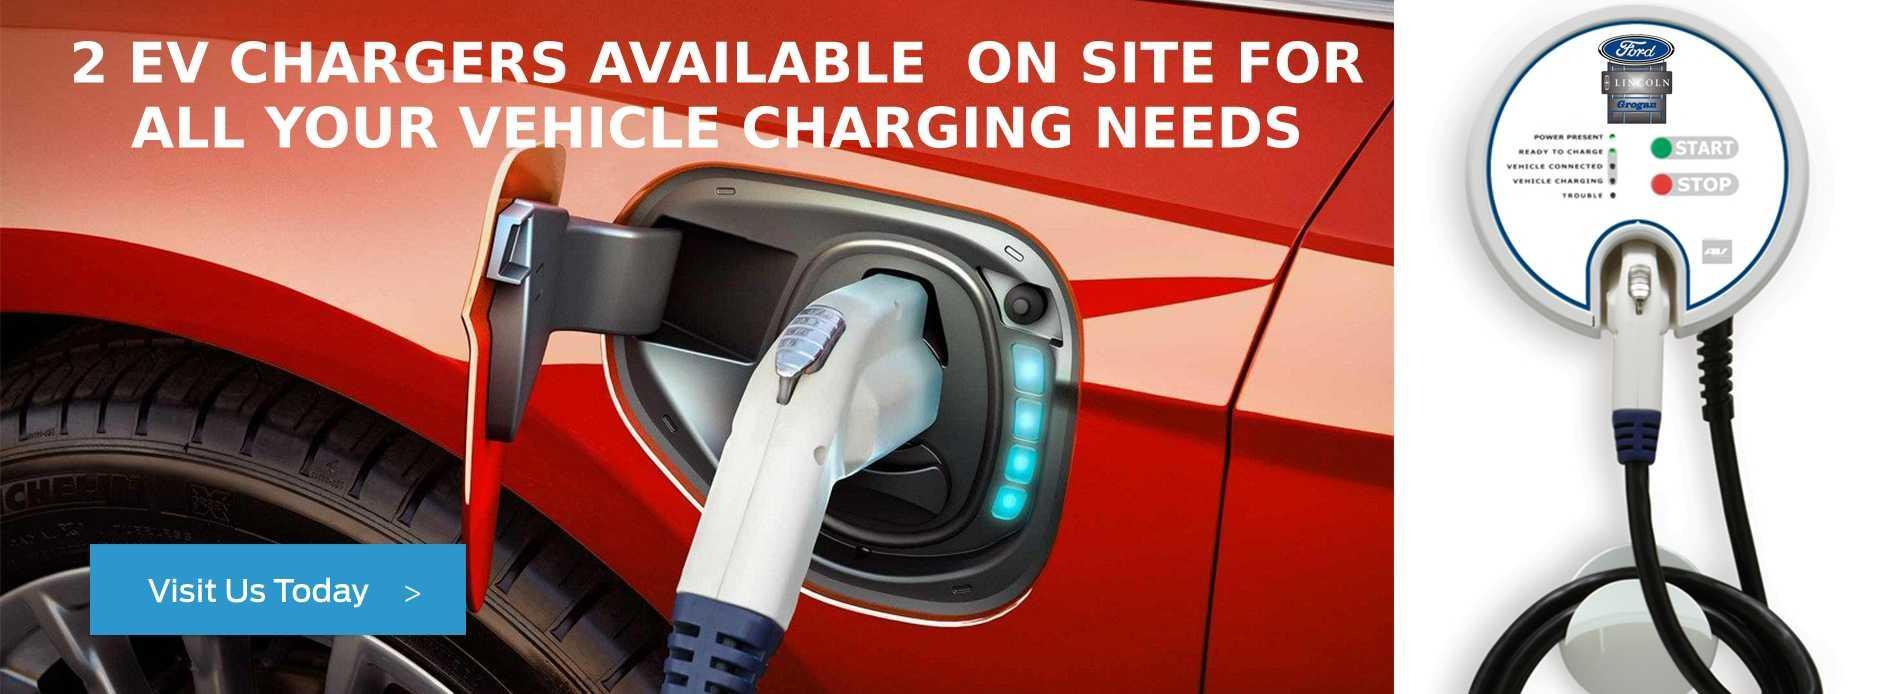 Charging Stations Available